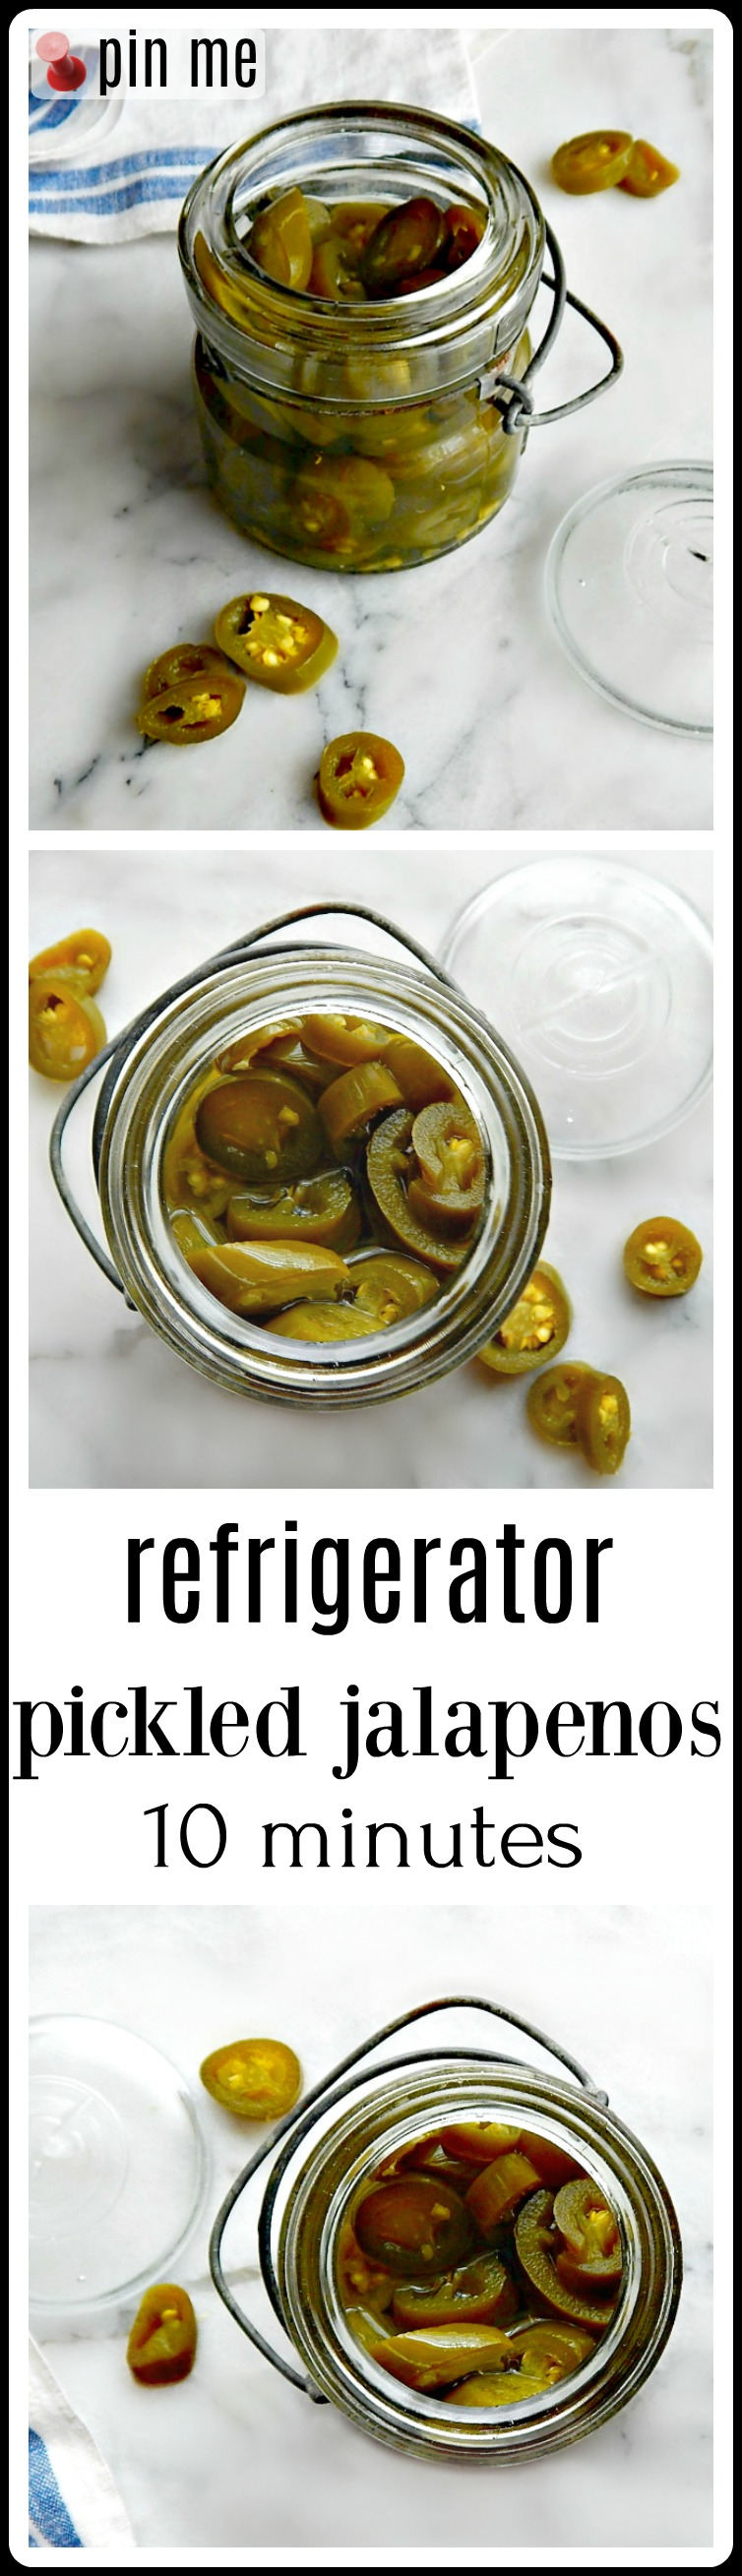 Refrigerator Pickled Jalapenos: Do yanno what's a great little thing to have on hand? Just to perk up a little Mexican food. Maybe toss on some tacos? Refrigerator Pickled Jalapenos. They're like 10 minutes to make and once you try them, you'll have that